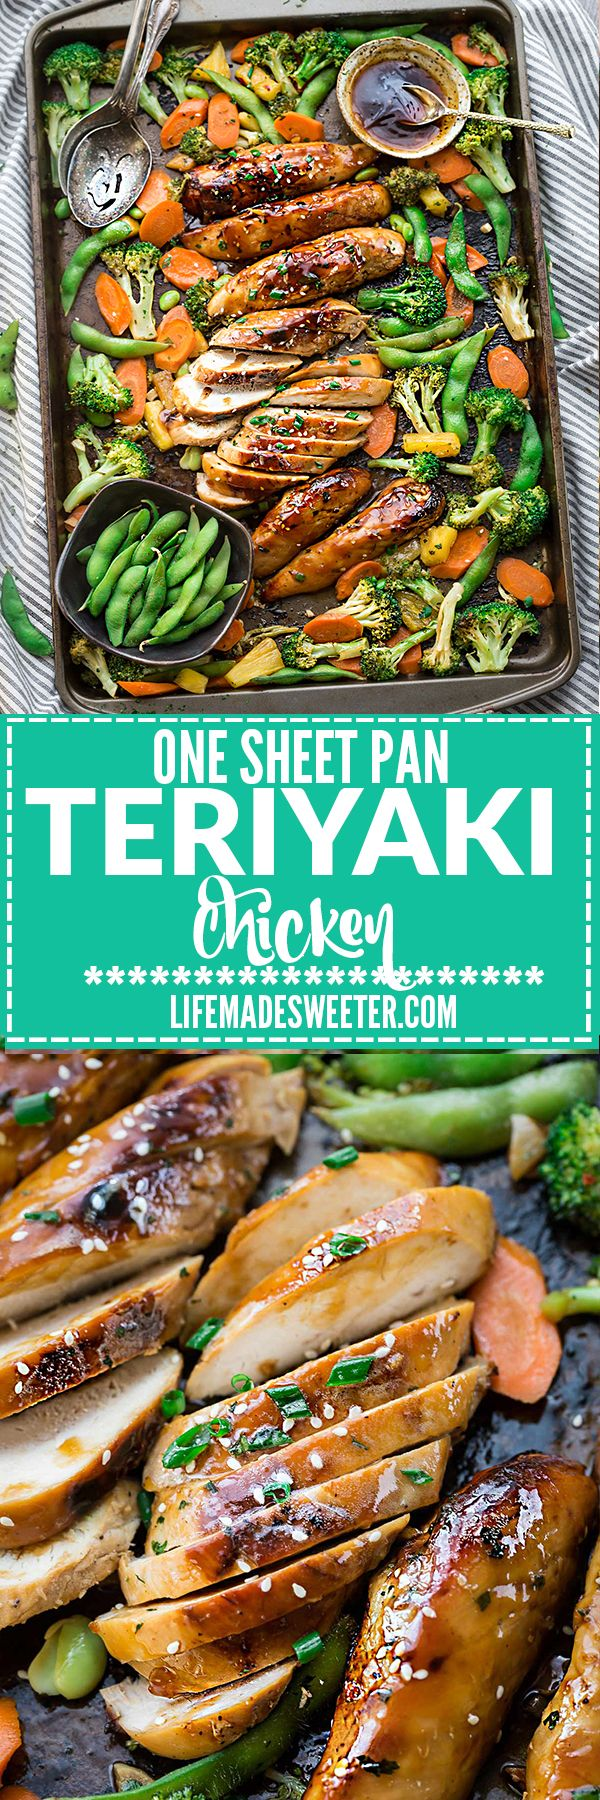 One Sheet Pan Teriyaki Chicken with Vegetables makes the perfect easy weeknight meal! Best of all, everything cooks up onto just ONE sheet pan in just 30 minutes with minimal cleanup! So much easier, healthier and better than takeout! Weekly meal prep or leftovers make delicious school or work lunch bowls - just add your favorite side like quinoa, zoodles, cauliflower rice or brown or jasmine rice.